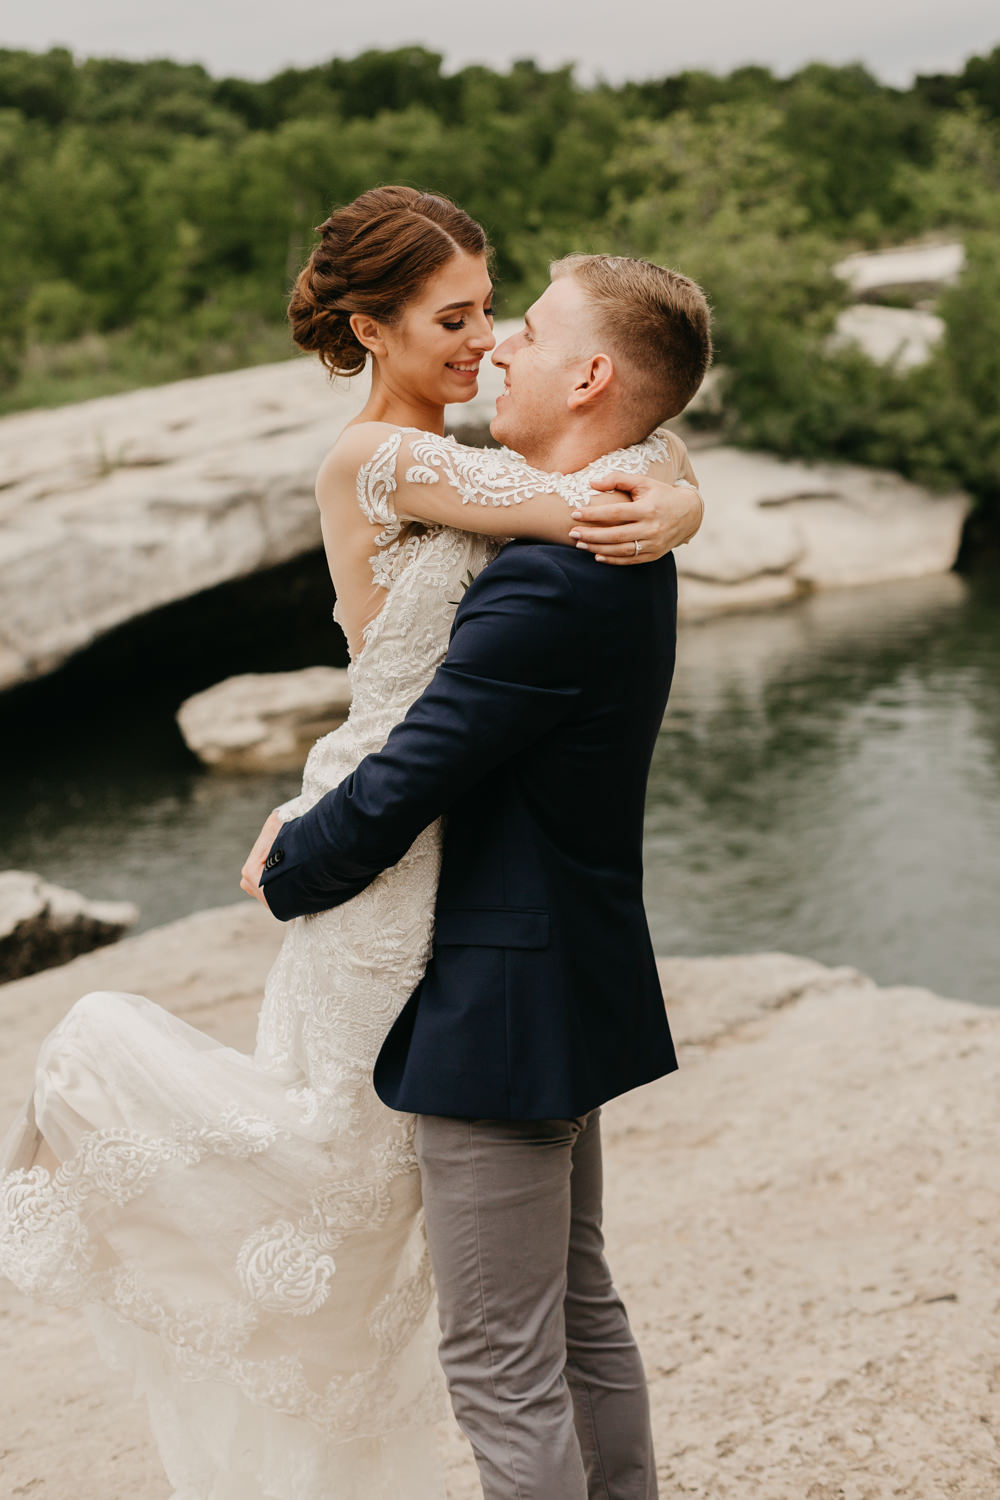 HaileyDylan_Austin Elopement Photographer Austin Wedding Photographer-124.jpg